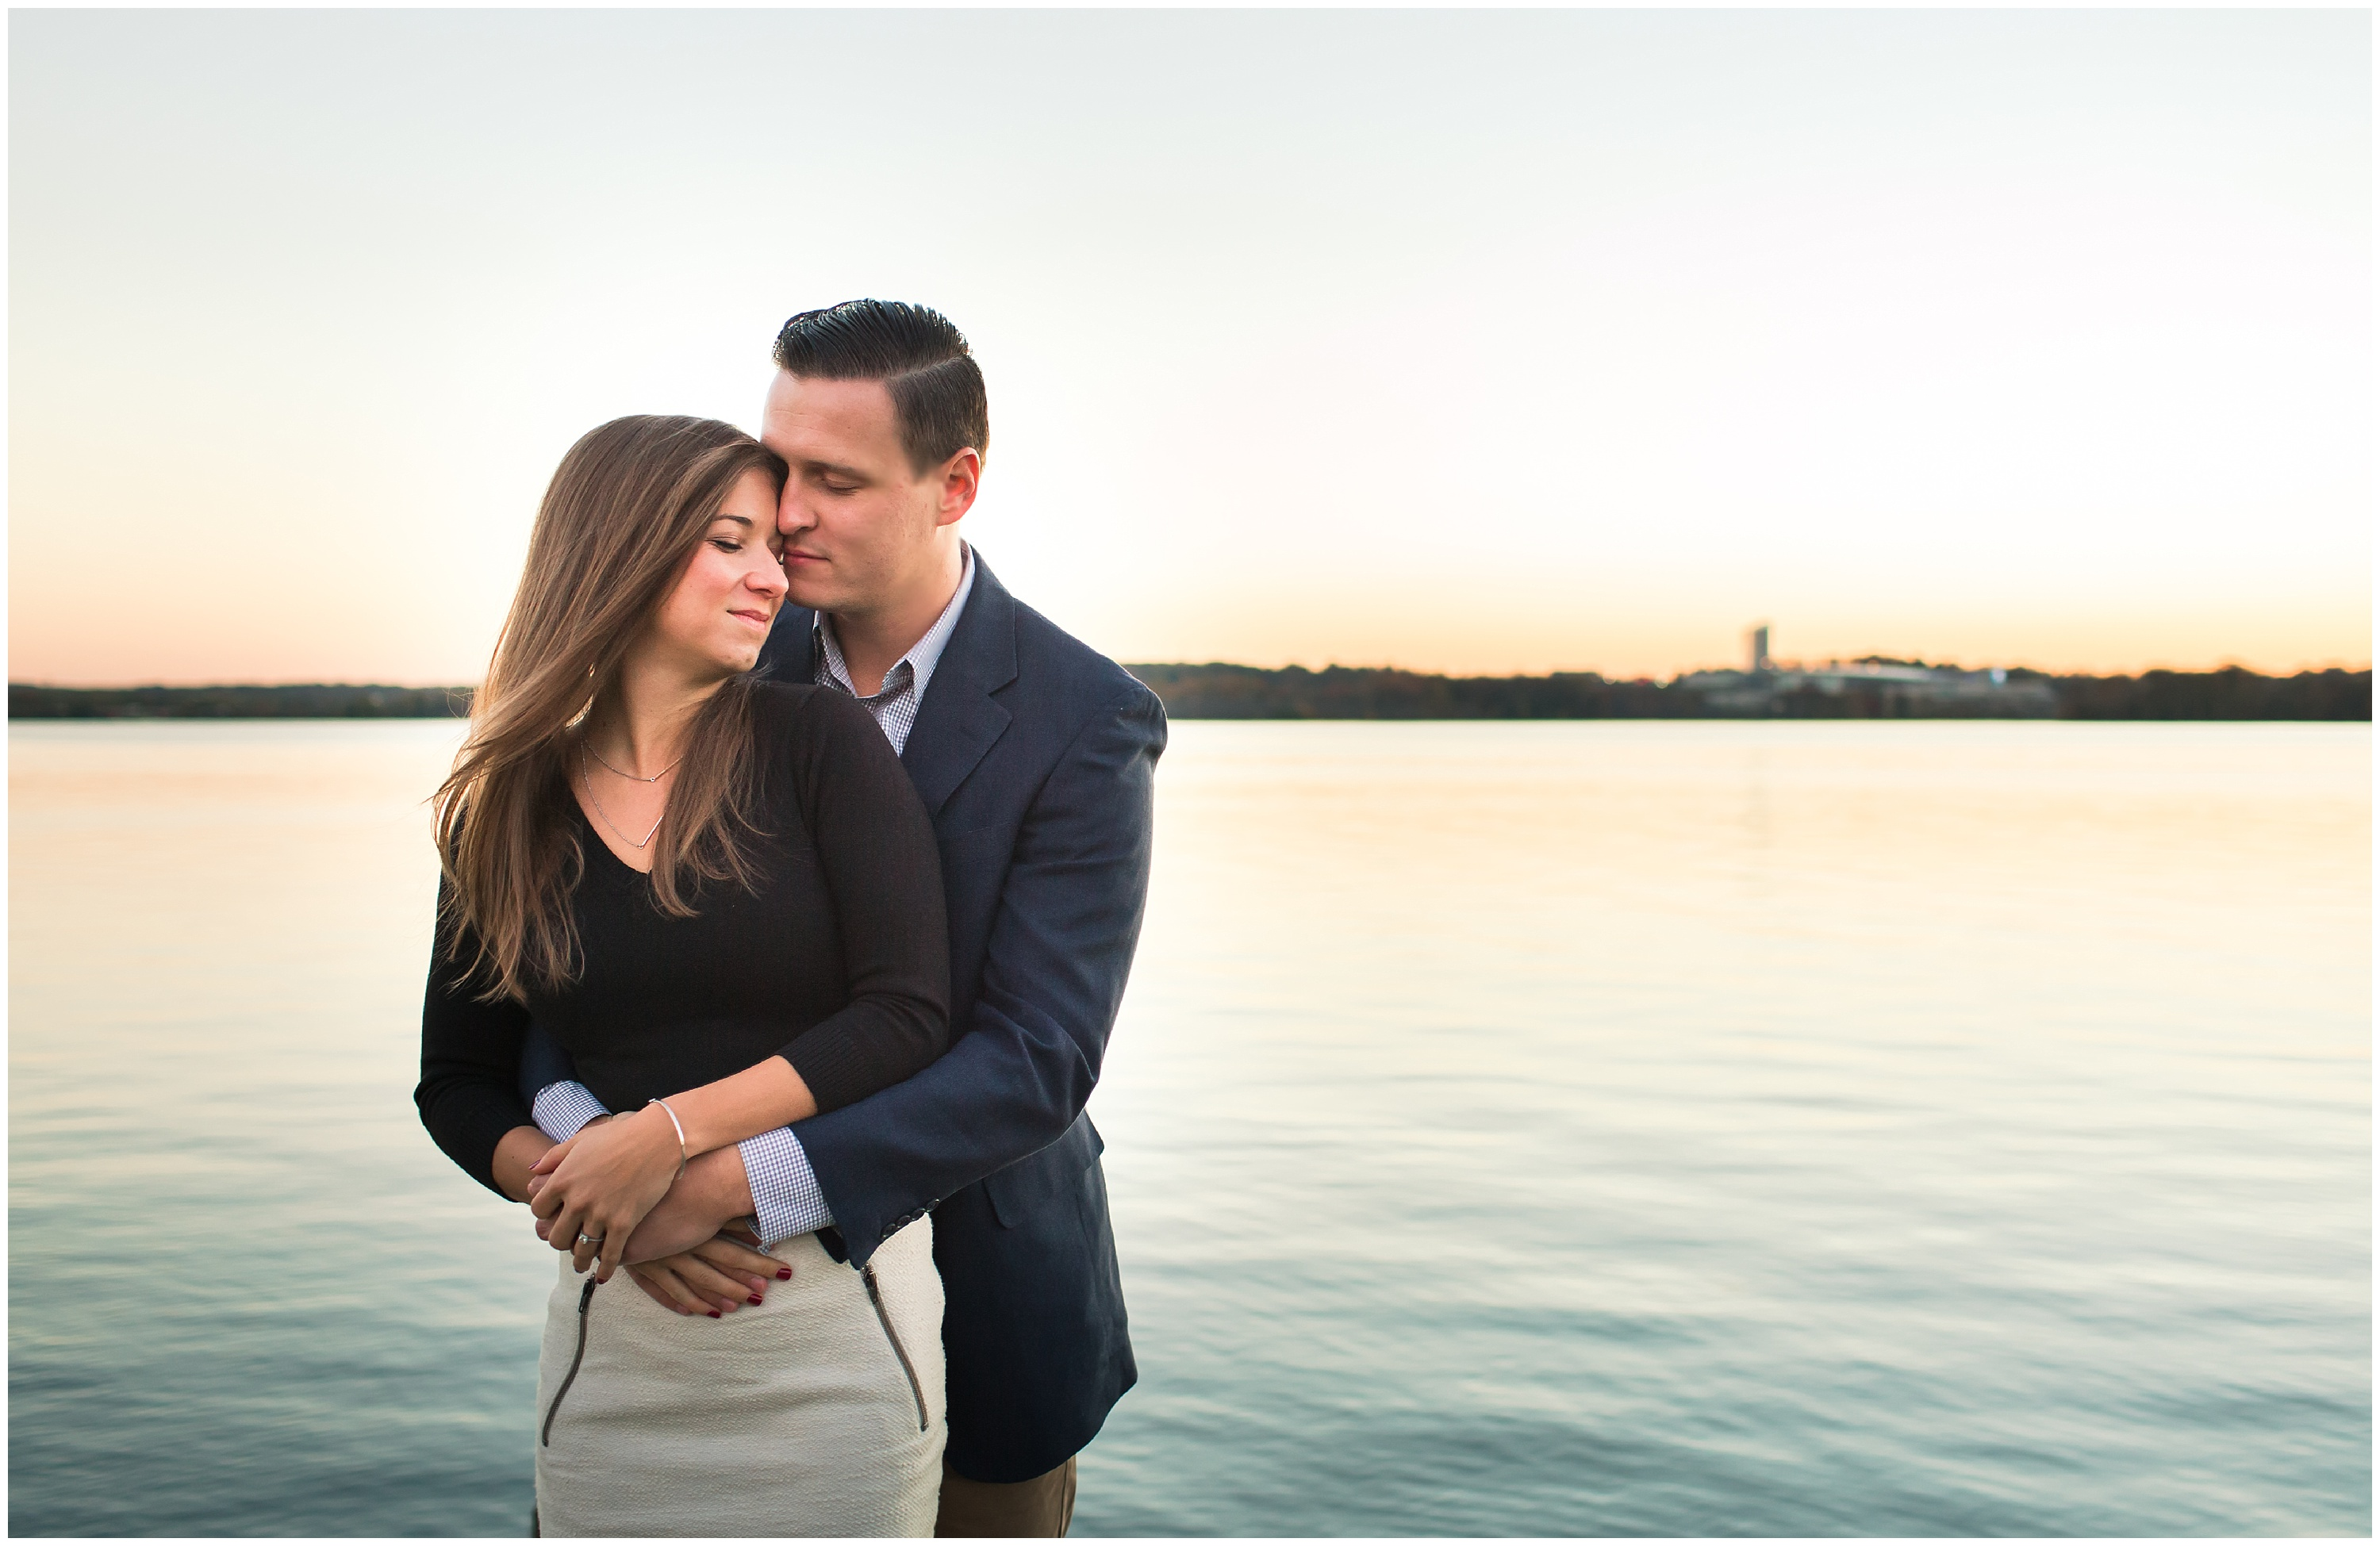 Sofia-John-Waterfront-Alexandria-Wilkes-Tunnel-DC-Engagement00004